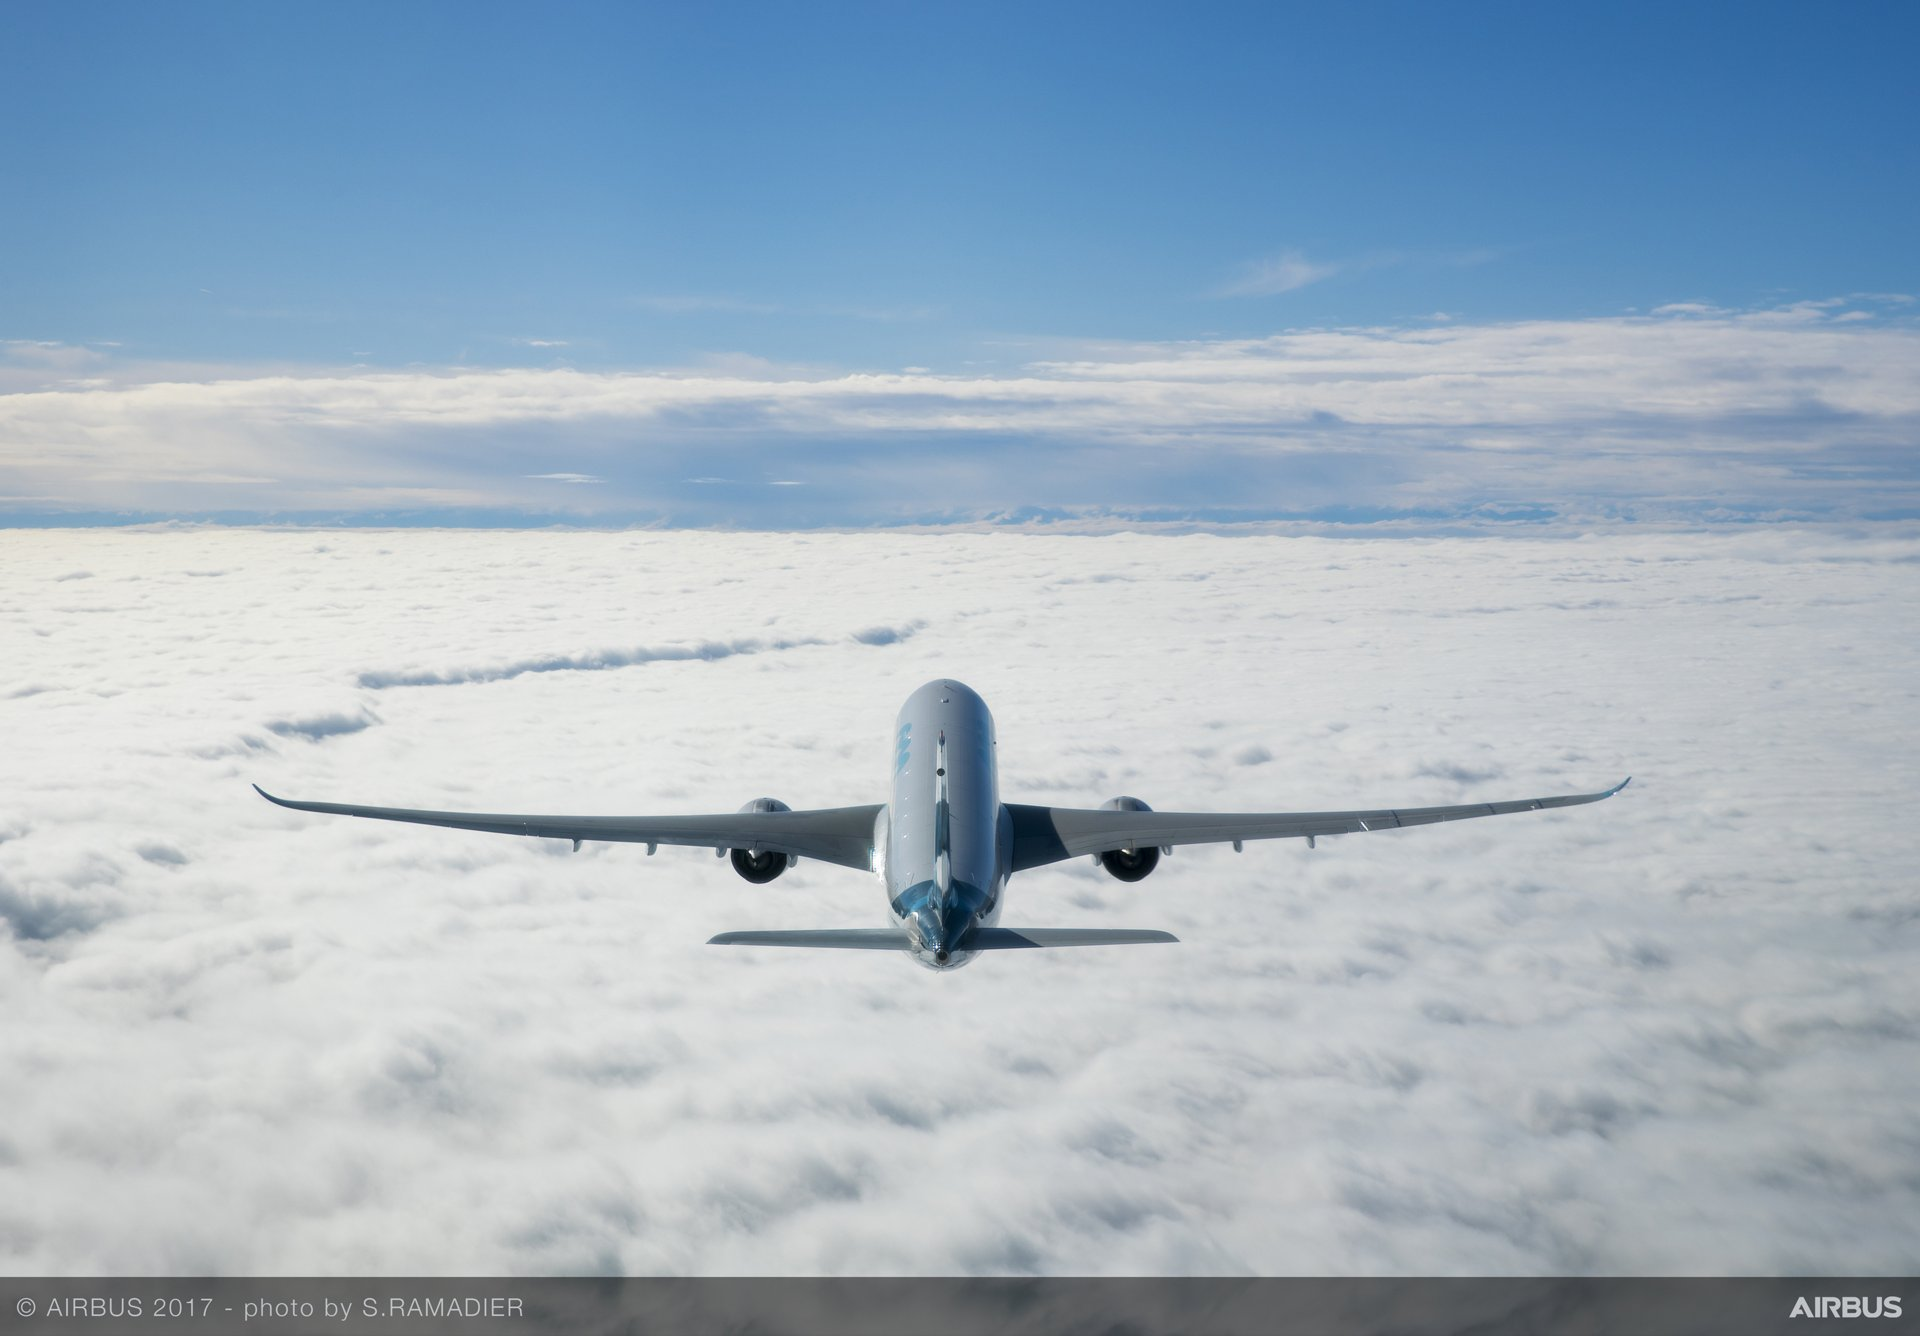 The first of three A330neo Family development aircraft to fly – MSN1795, an A330-900 variant – is shown during its high-profile maiden flight performed 19 October 2017